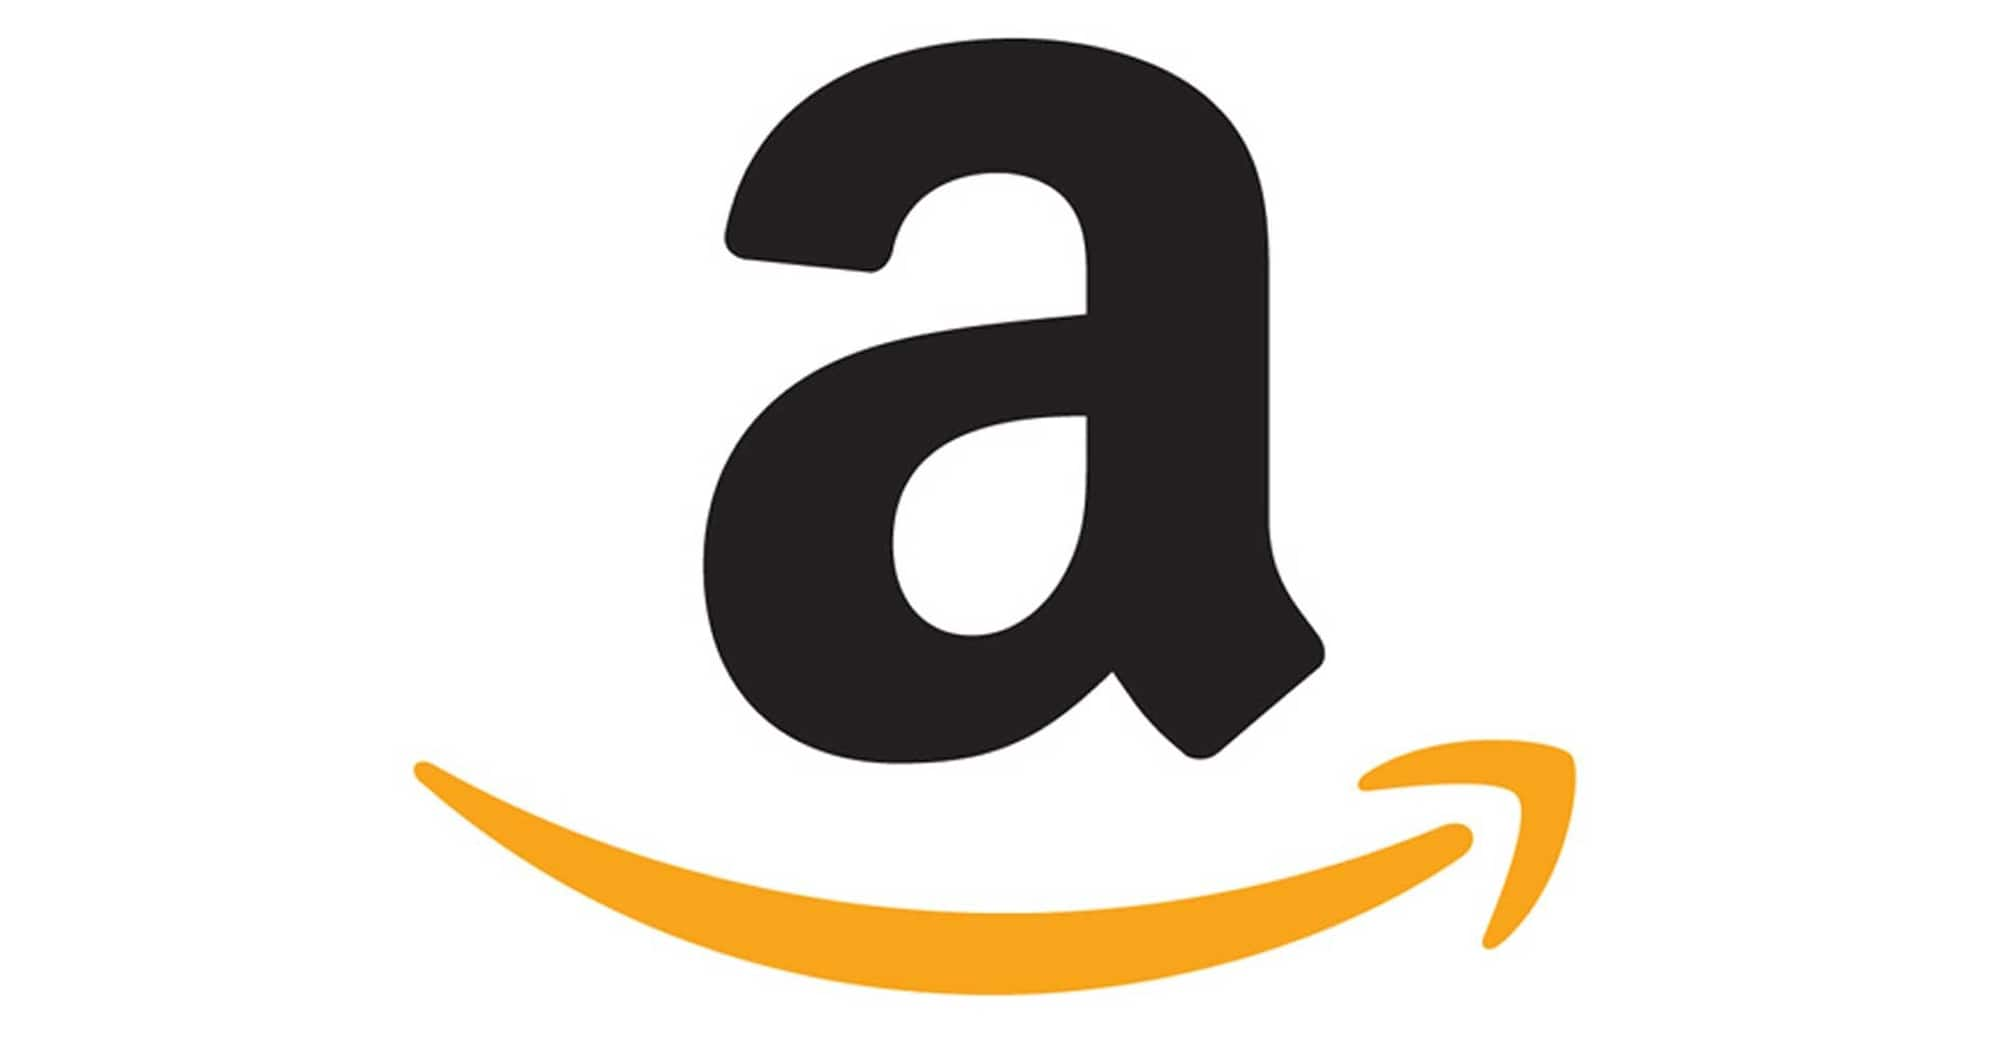 Add Amazon Cash 4x Totaling $100, and get $20 Amazon Credit Free! - YMMV